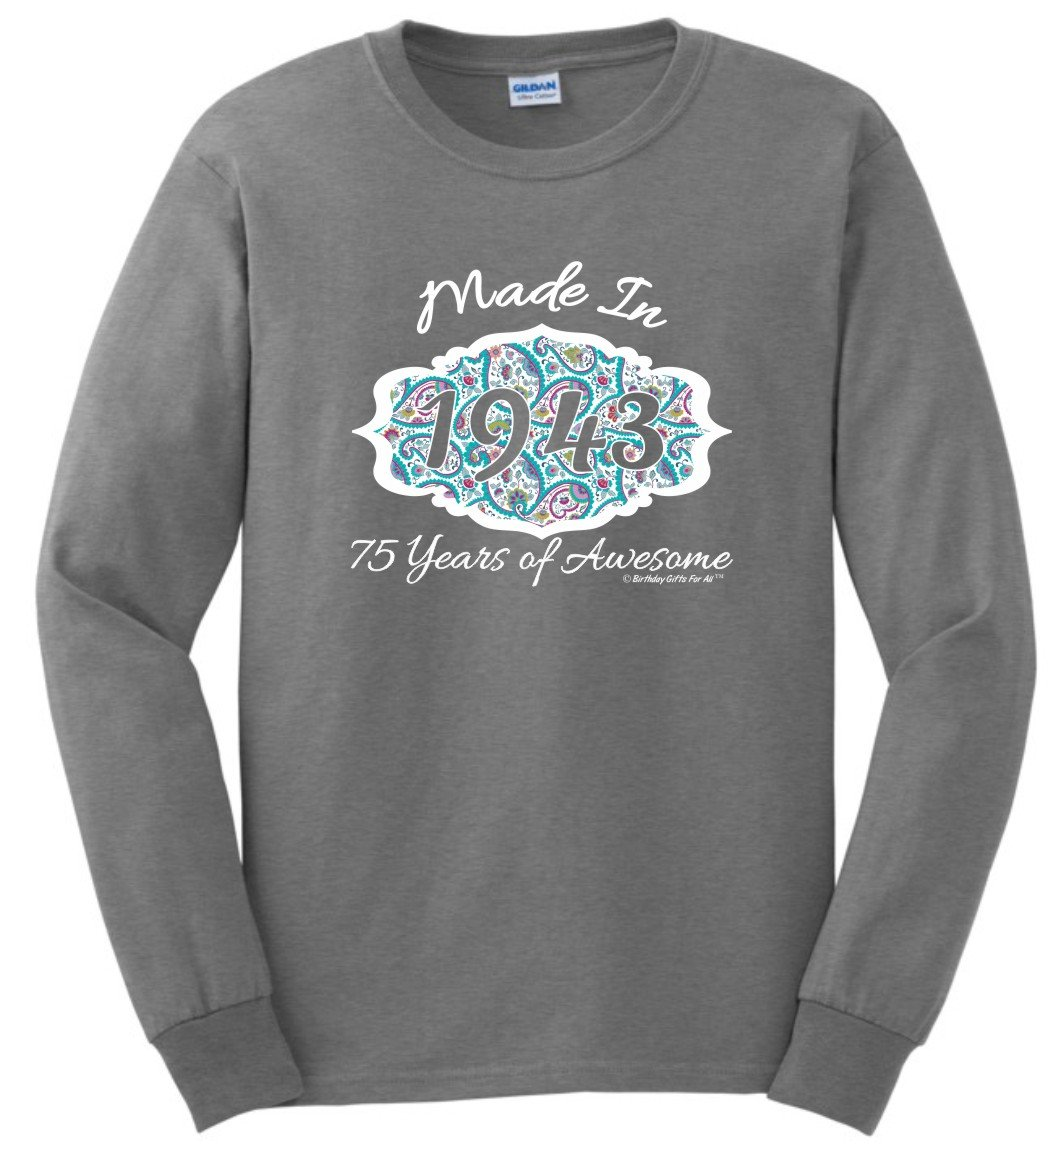 75th Birthday Gift Ideas 75th Birthday Gifts Made 1943 75 Years Awesome Long Sleeve T-Shirt Medium SpGry